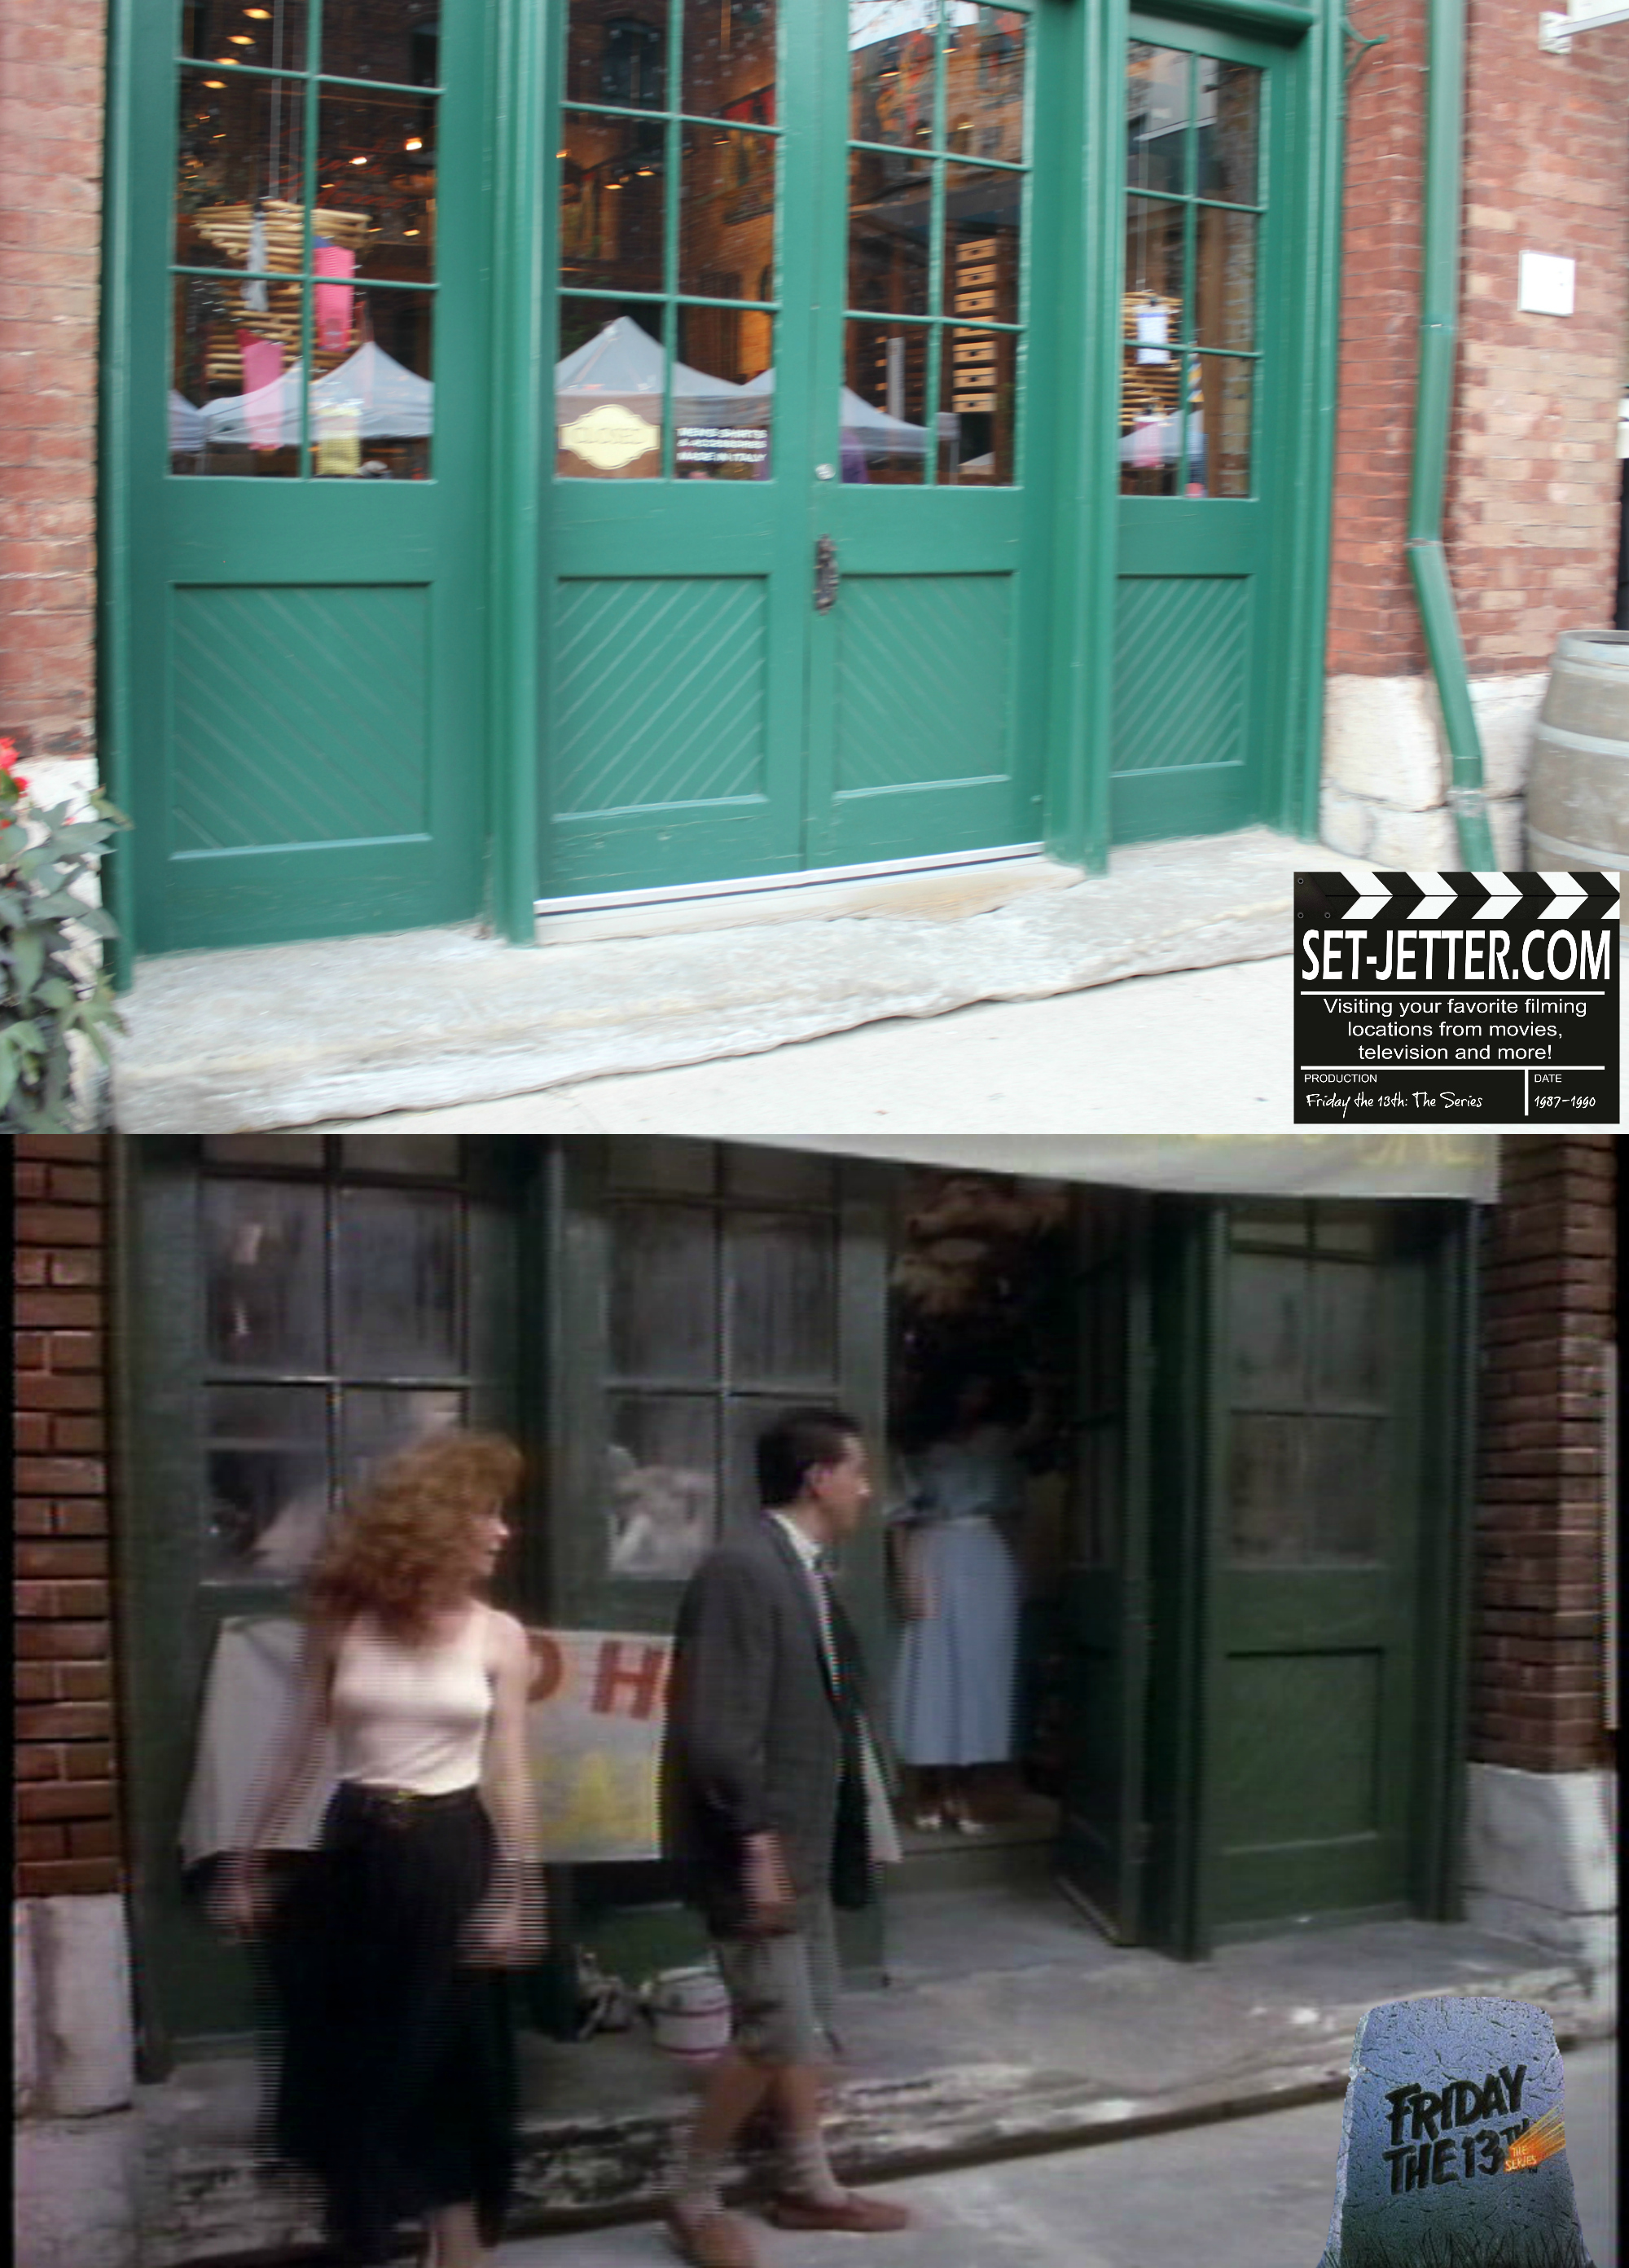 Friday the 13th The Series comparison 16.jpg